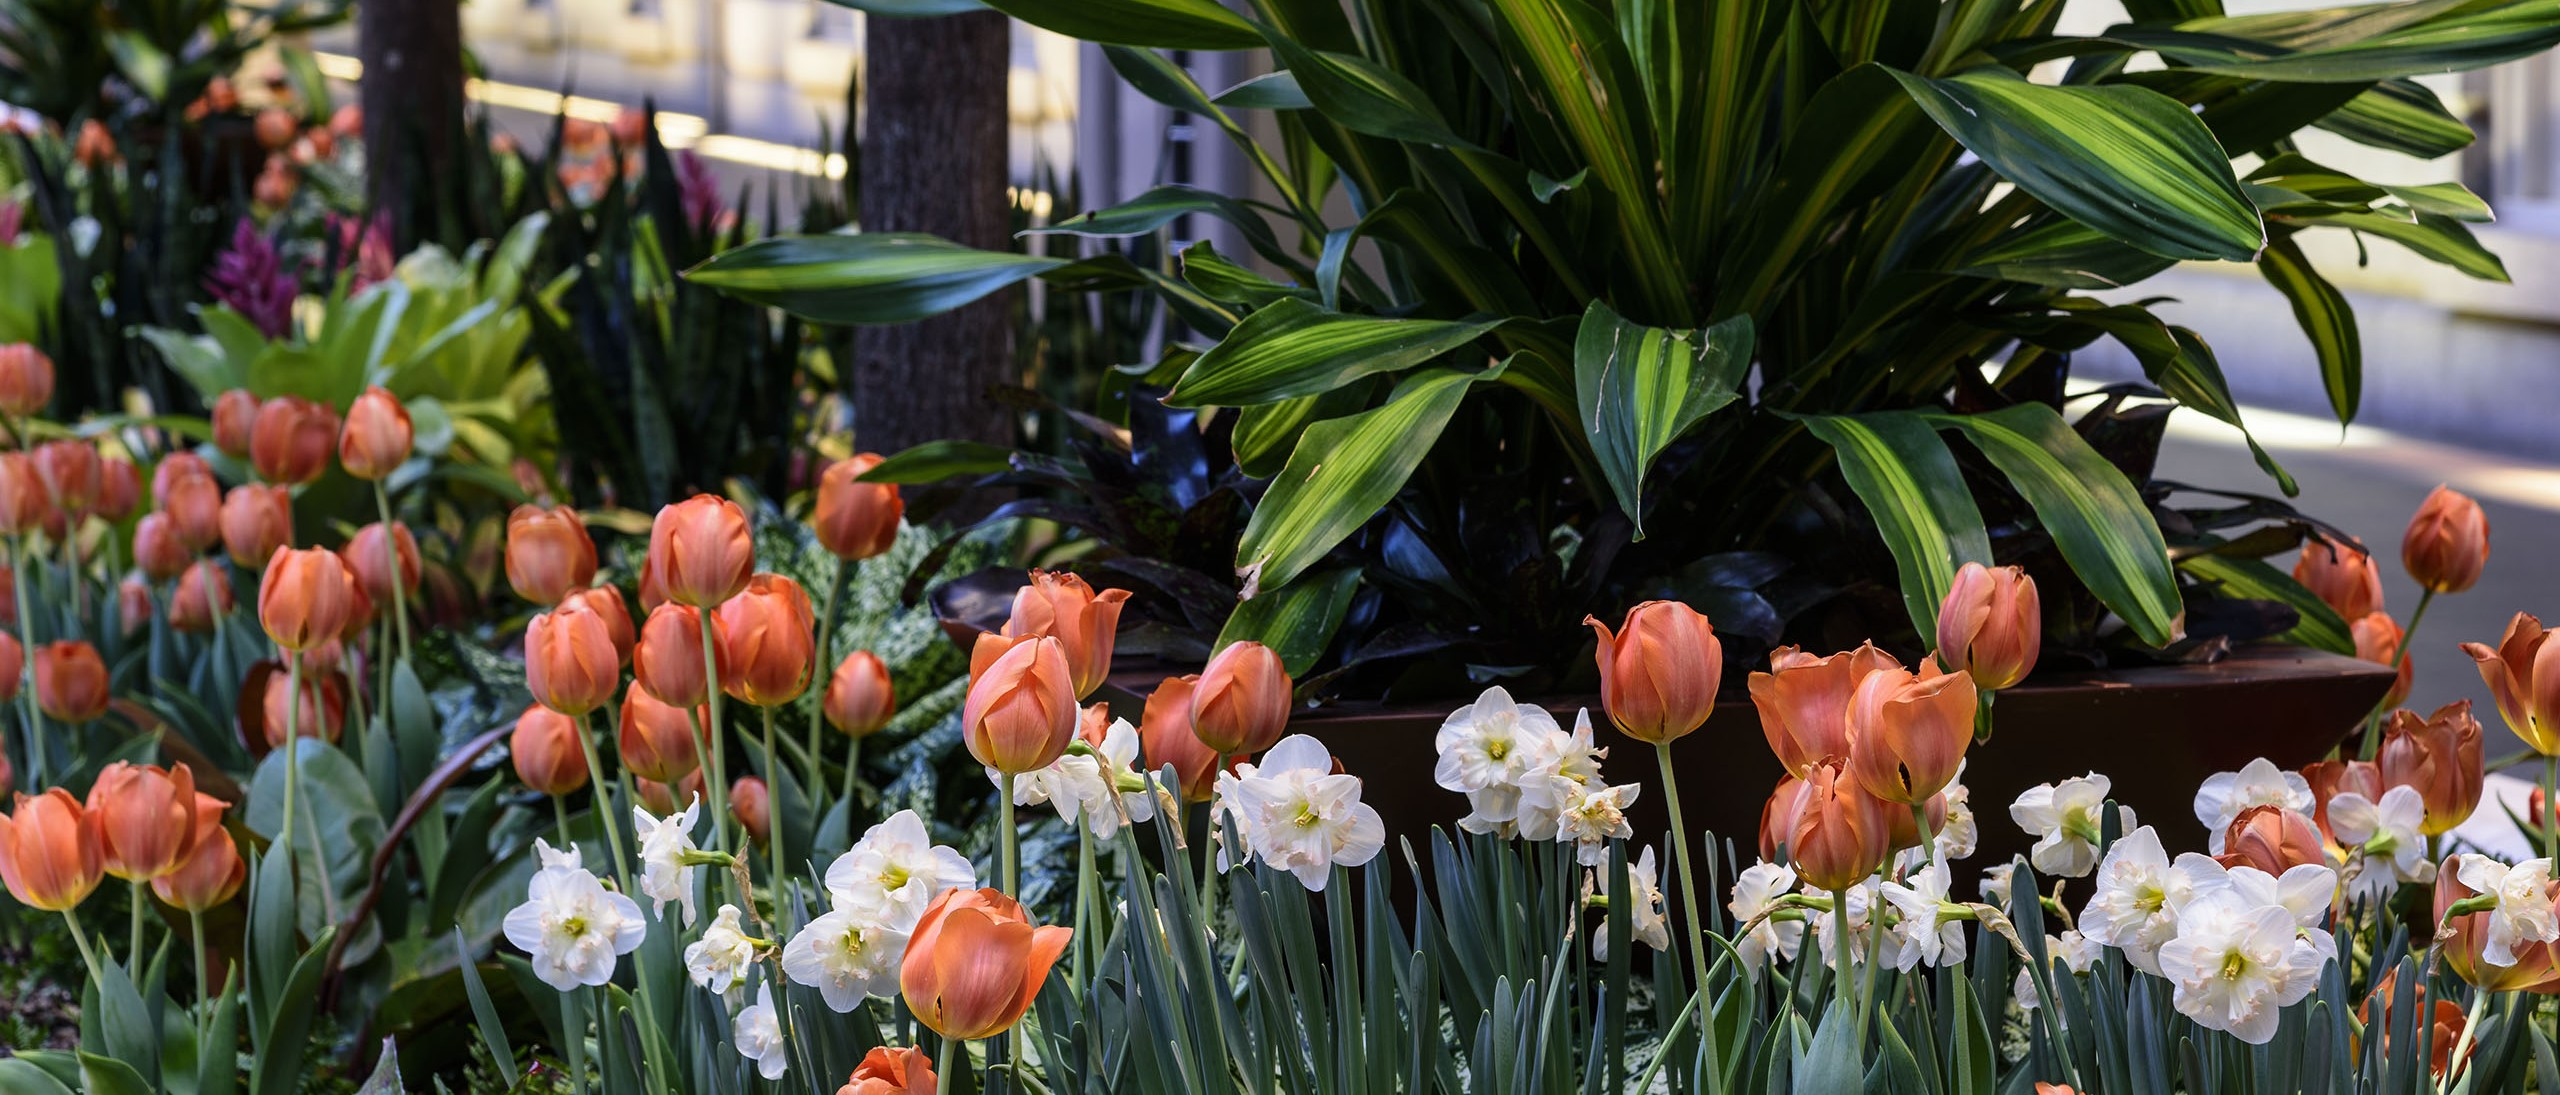 Tulips and daffodils in Kogod planter